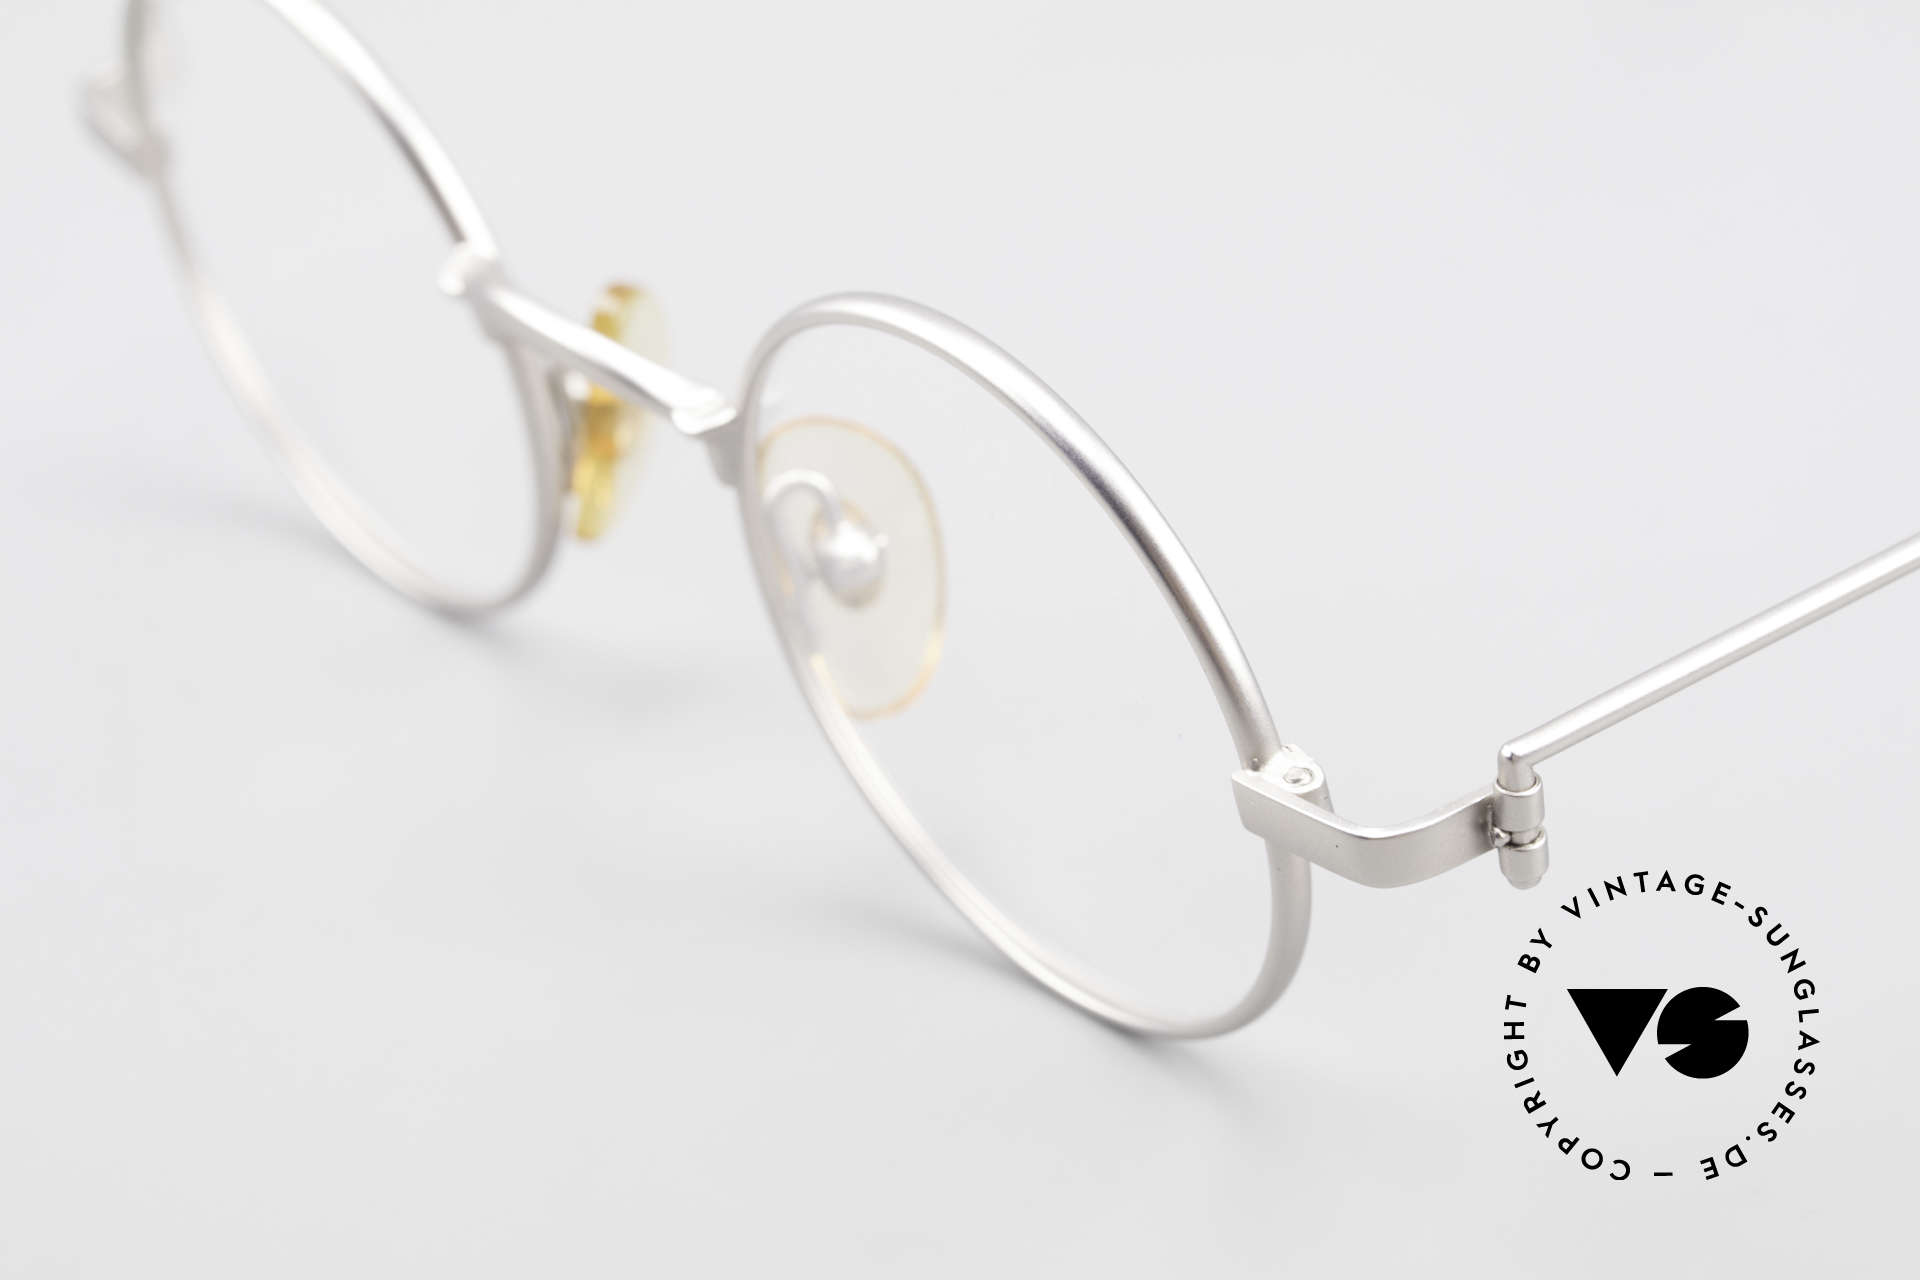 W Proksch's M30/8 Round Glasses 90s Avantgarde, since 1998 the company Kaneko produces licensed, Made for Men